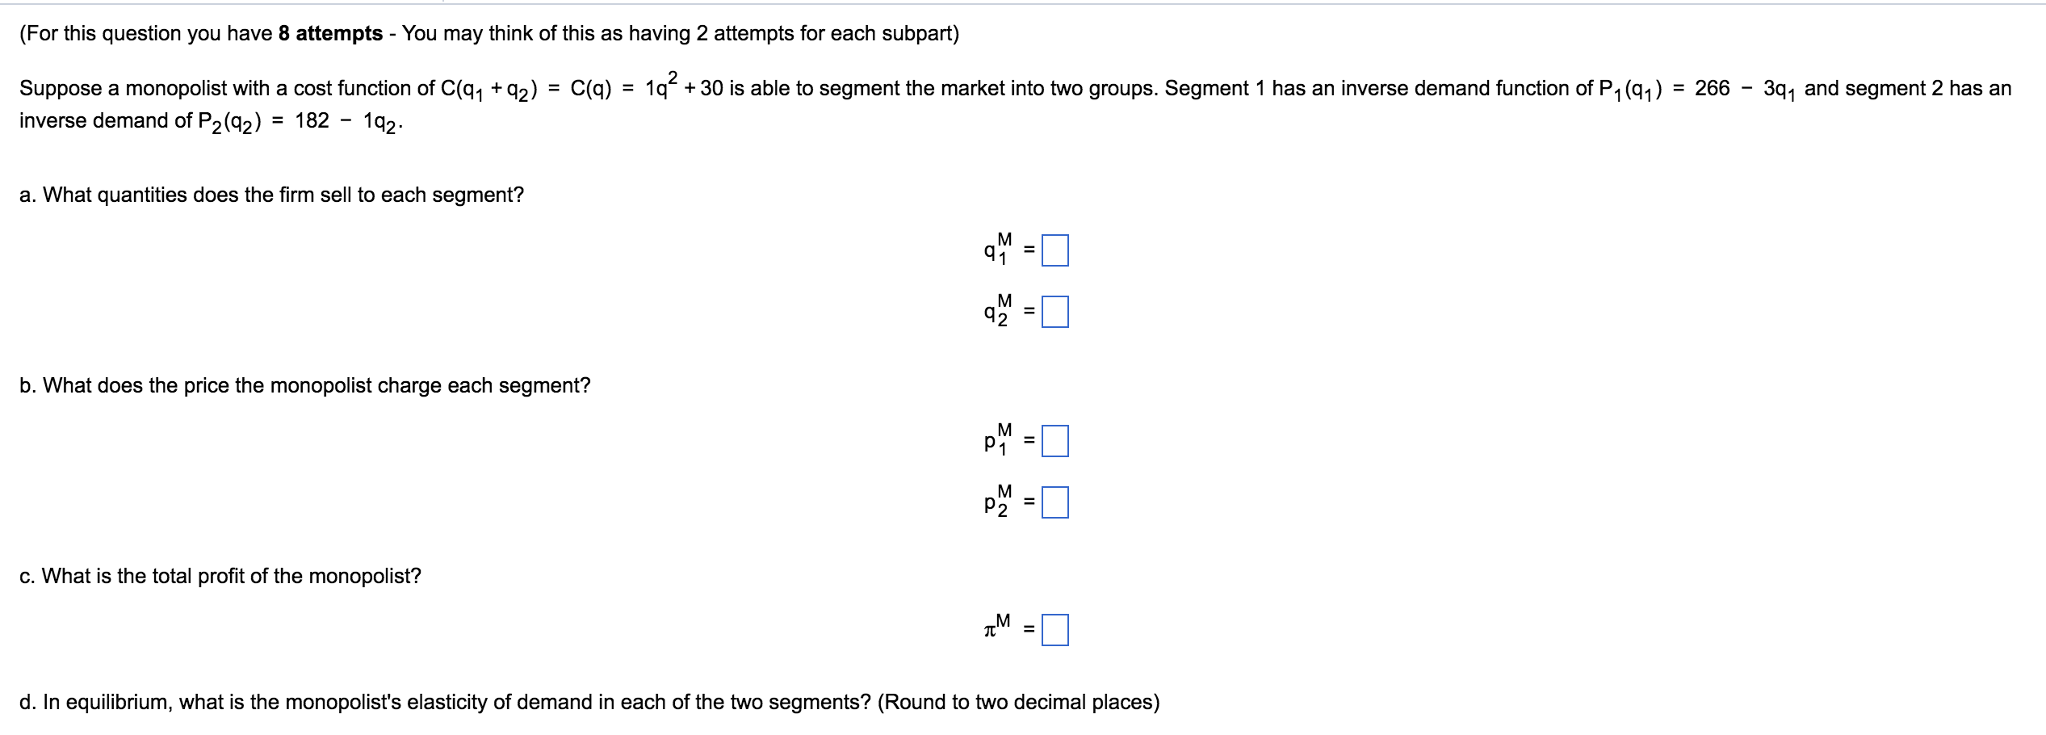 Question: Suppose a monopolist with a cost function of C(q_1 + q_2) = C(q)  = 1q^2 + 30 is able to segment t.